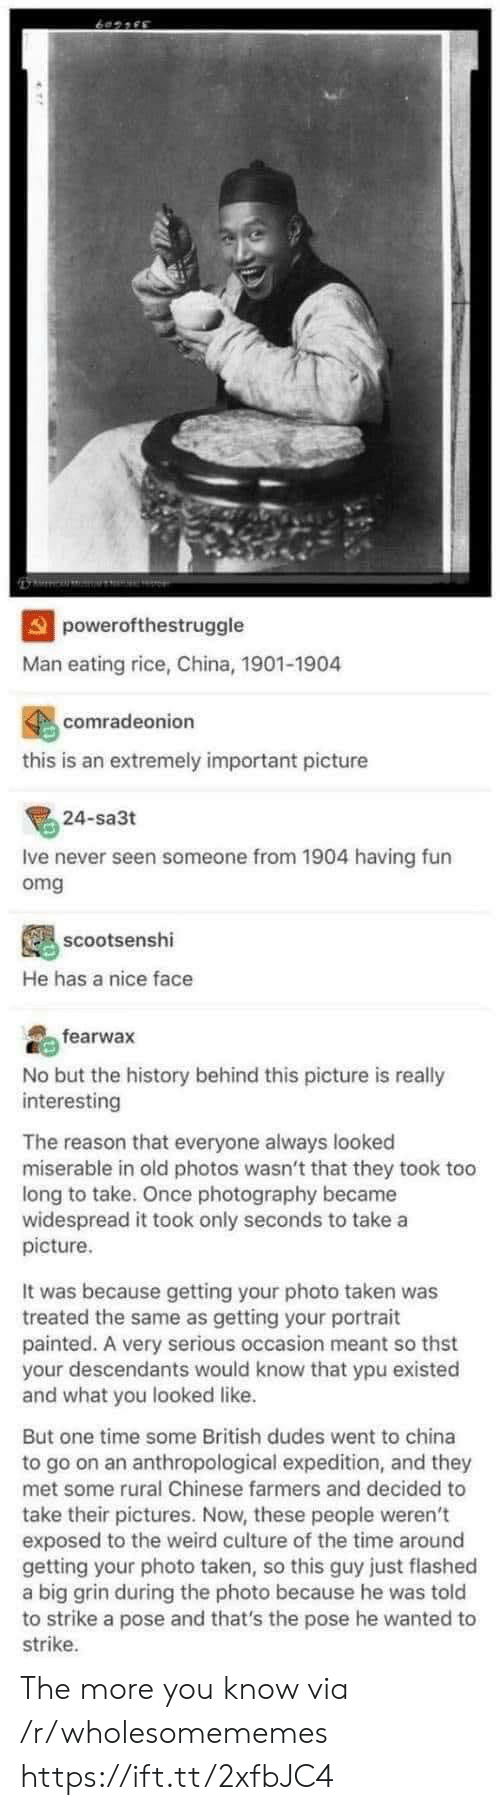 They Took: powerofthestruggle  Man eating rice, China, 1901-1904  comradeonion  this is an extremely important picture  24-sa3t  Ive never seen someone from 1904 having fun  omg  scootsenshi  He has a nice face  fearwax  No but the history behind this picture is really  interesting  The reason that everyone always looked  miserable in old photos wasn't that they took too  long to take. Once photography became  widespread it took only seconds to take a  picture  It was because getting your photo taken was  treated the same as getting your portrait  painted. A very serious occasion meant so thst  your descendants would know that ypu existed  and what you looked like.  But one time some British dudes went to china  to go on an anthropological expedition, and they  met some rural Chinese farmers and decided to  take their pictures. Now, these people weren't  exposed to the weird culture of the time around  getting your photo taken, so this guy just flashed  a big grin during the photo because he was told  to strike a pose and that's the pose he wanted to  strike The more you know via /r/wholesomememes https://ift.tt/2xfbJC4